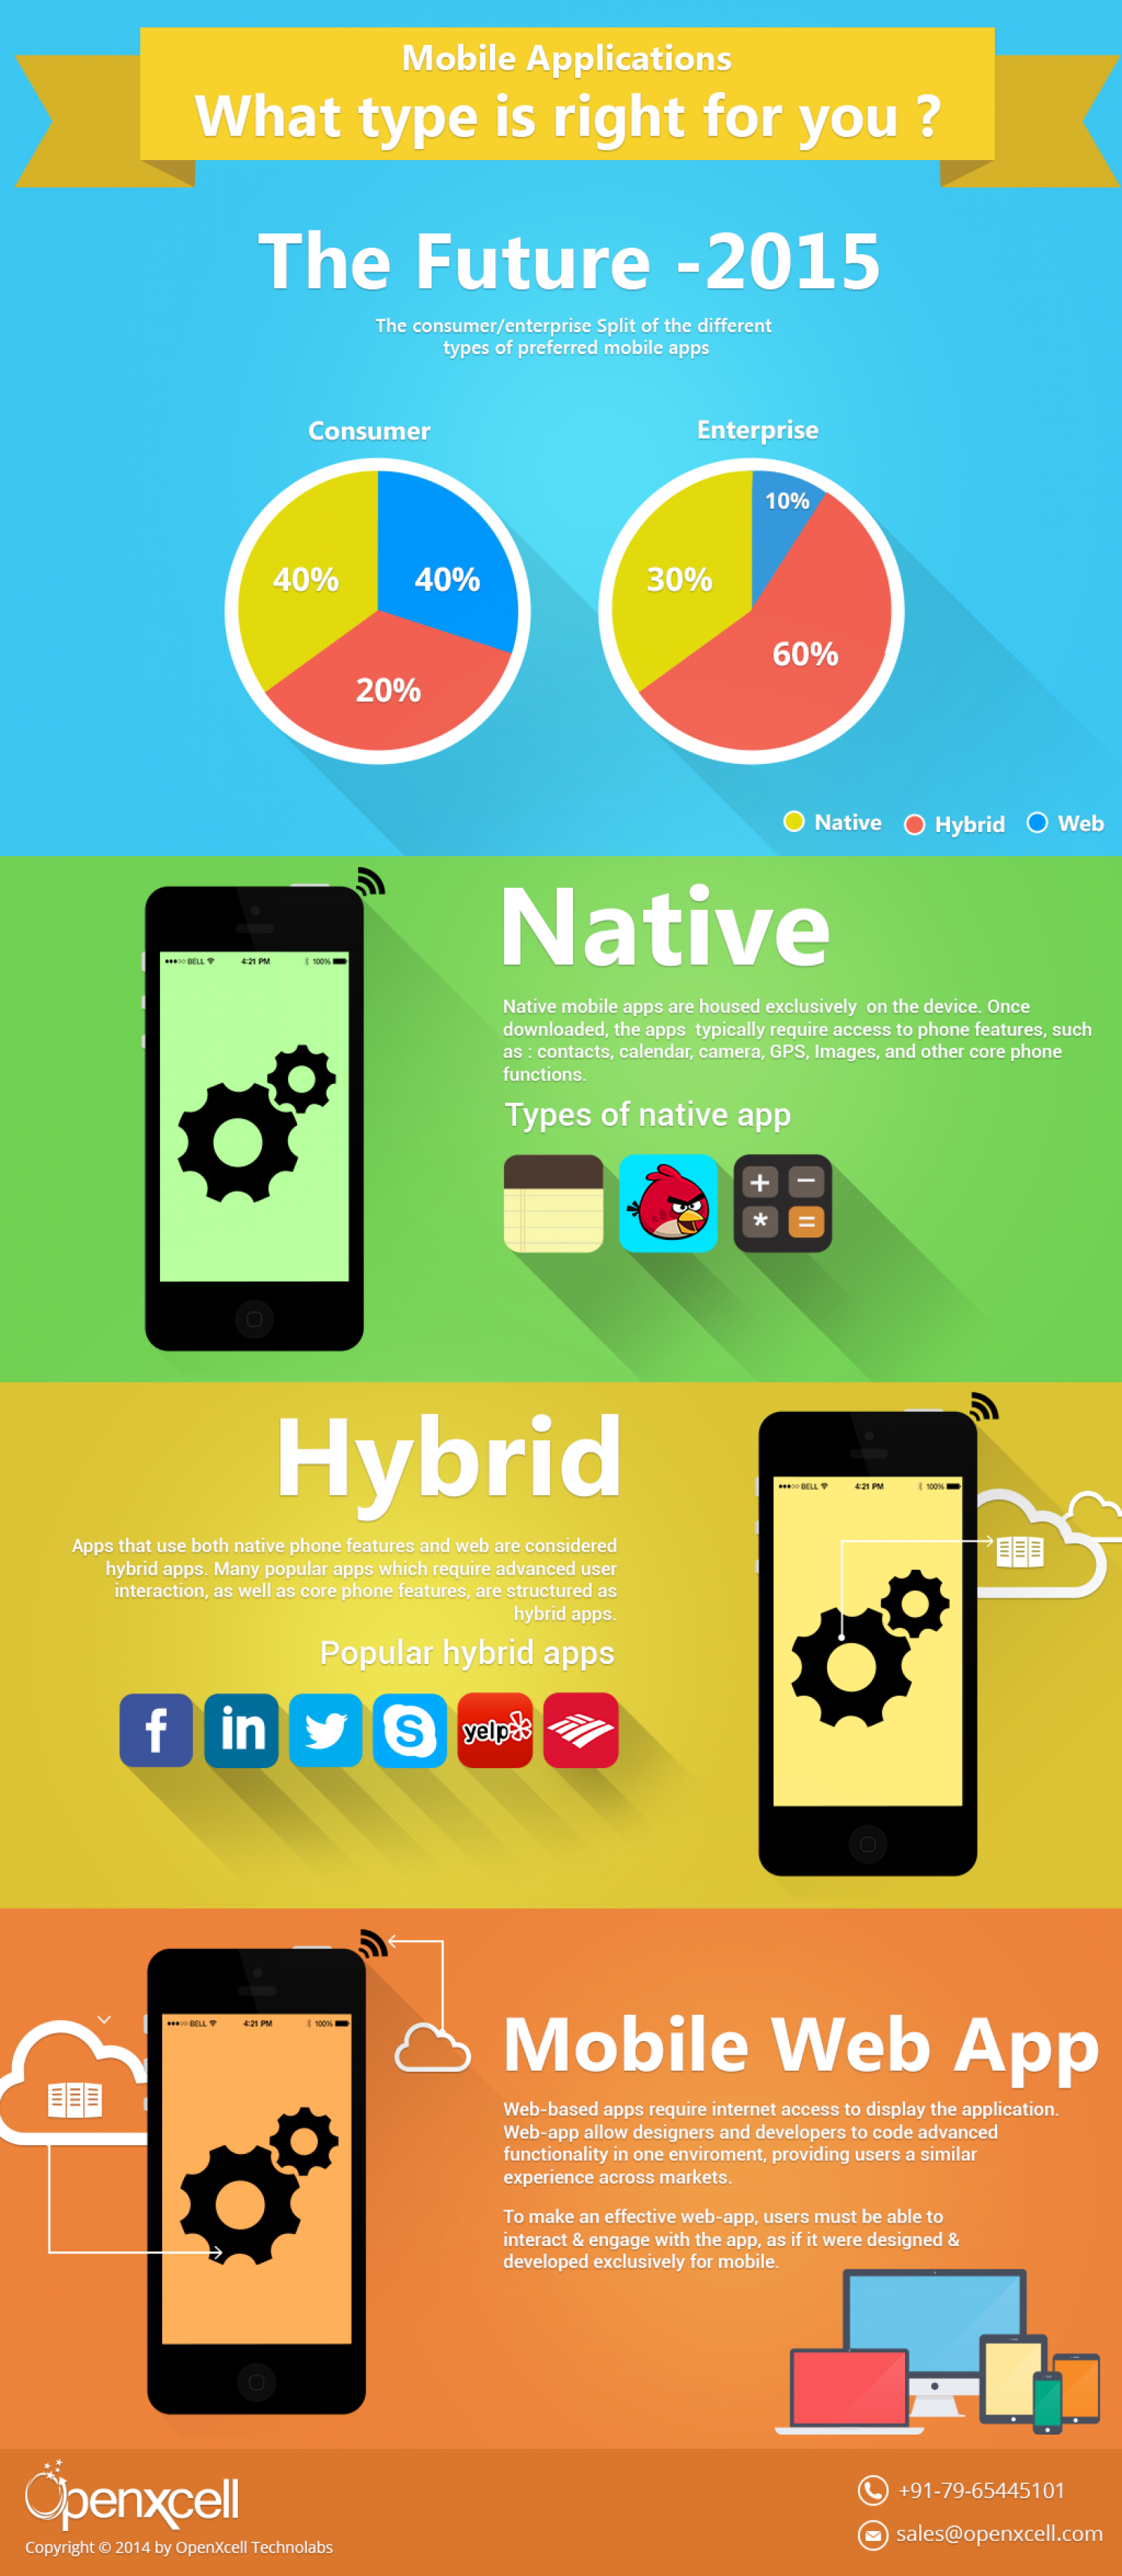 What Type Of Traveler Are You: Mobile Applications: What Type Is Right For You?